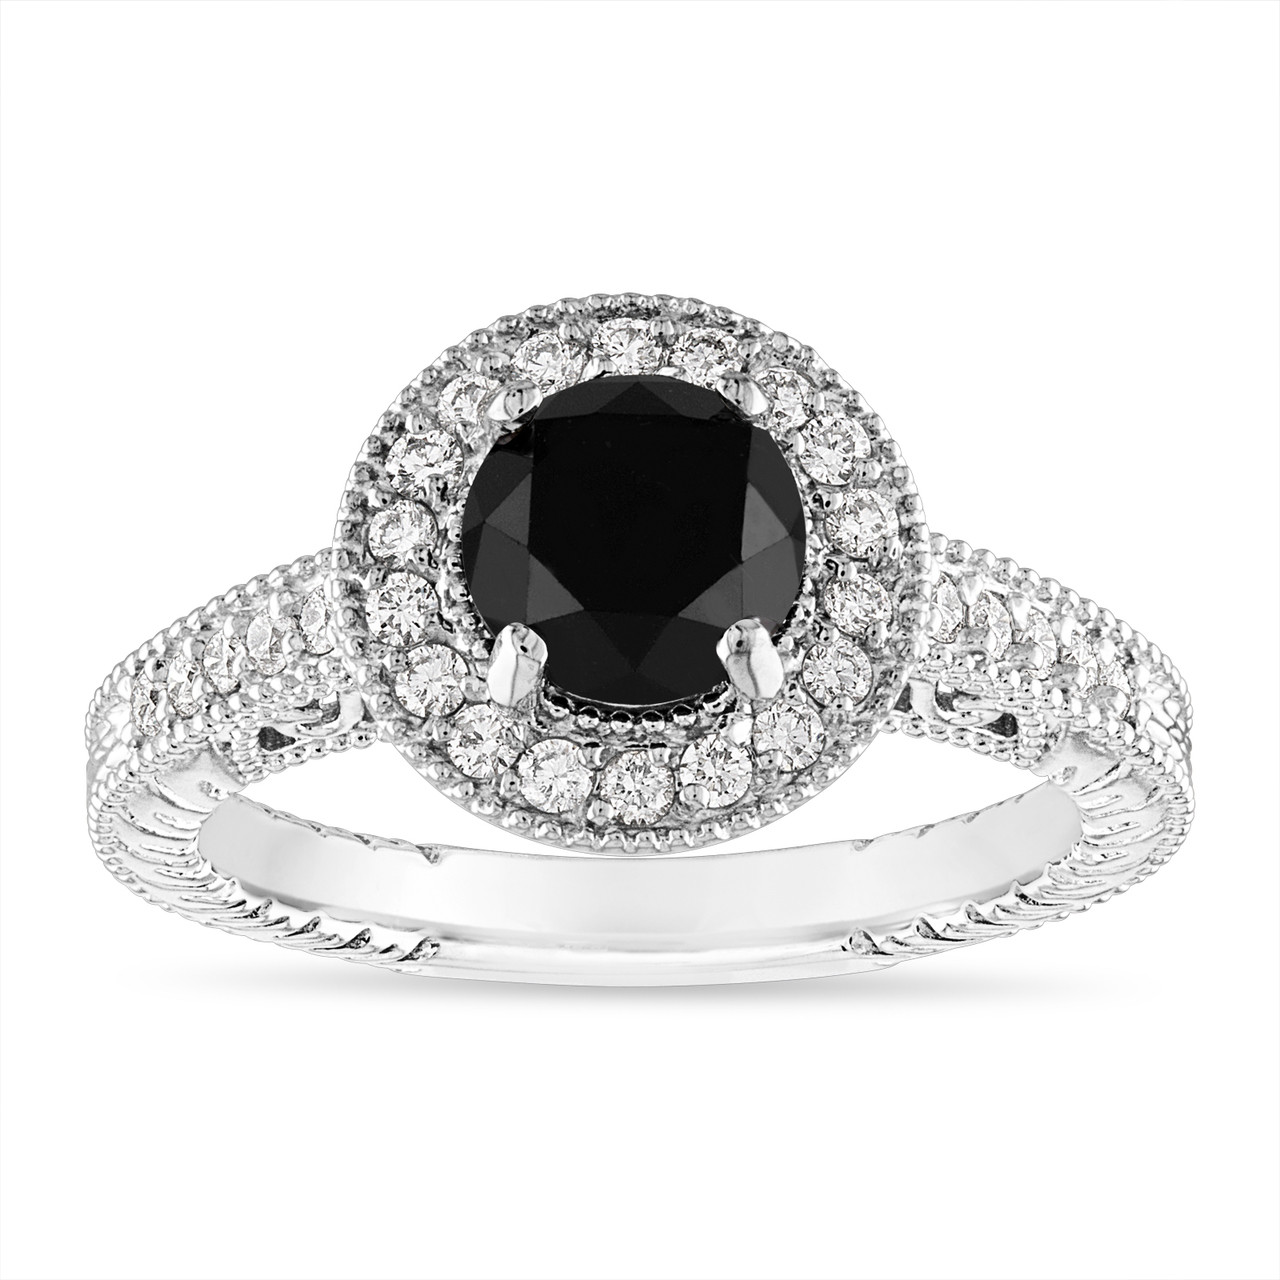 1 48 Carat Black Diamond Engagement Ring Vintage Wedding Ring Halo Pave 14k White Gold Certified Handmade Unique